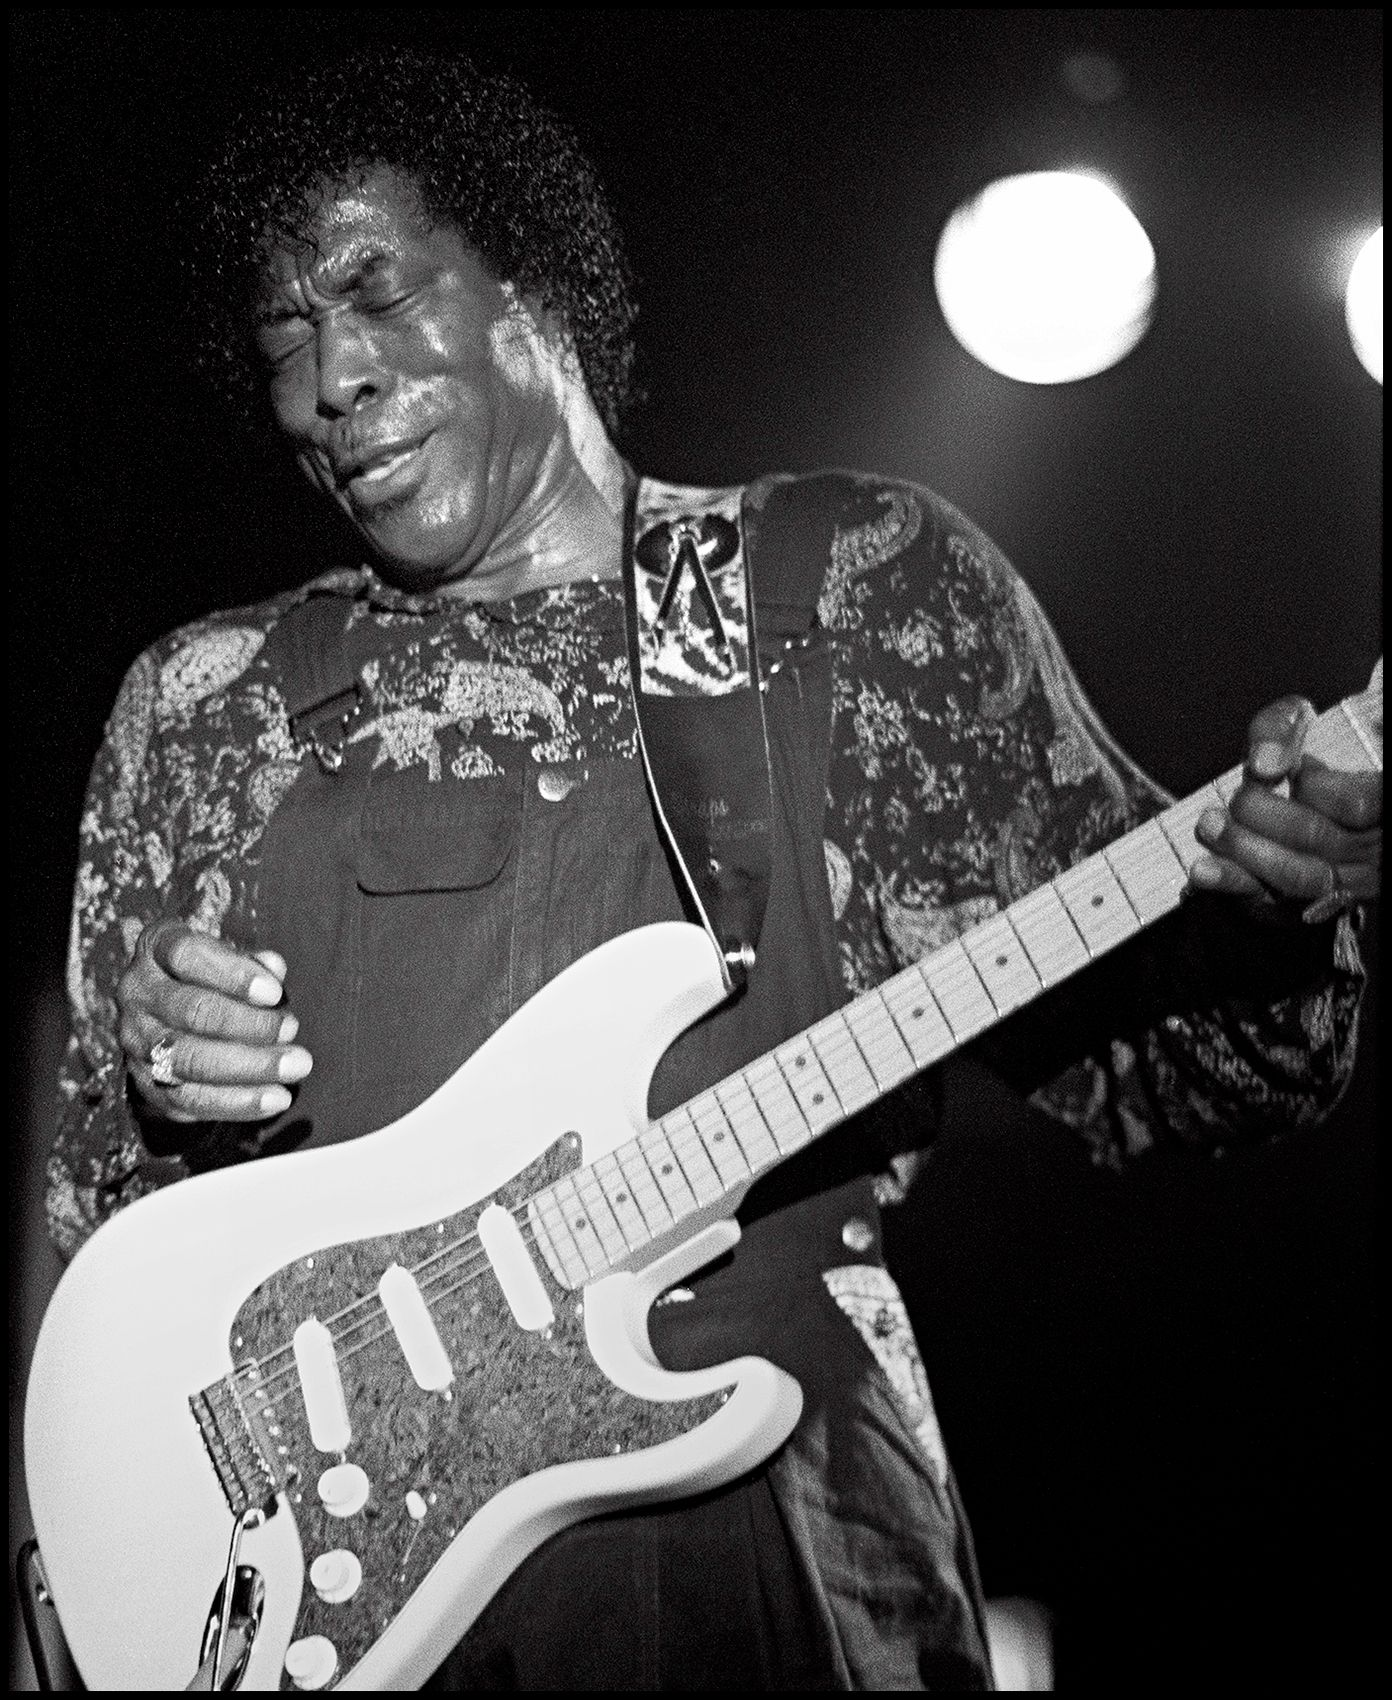 Buddy Guy - The Channel, Boston 1991